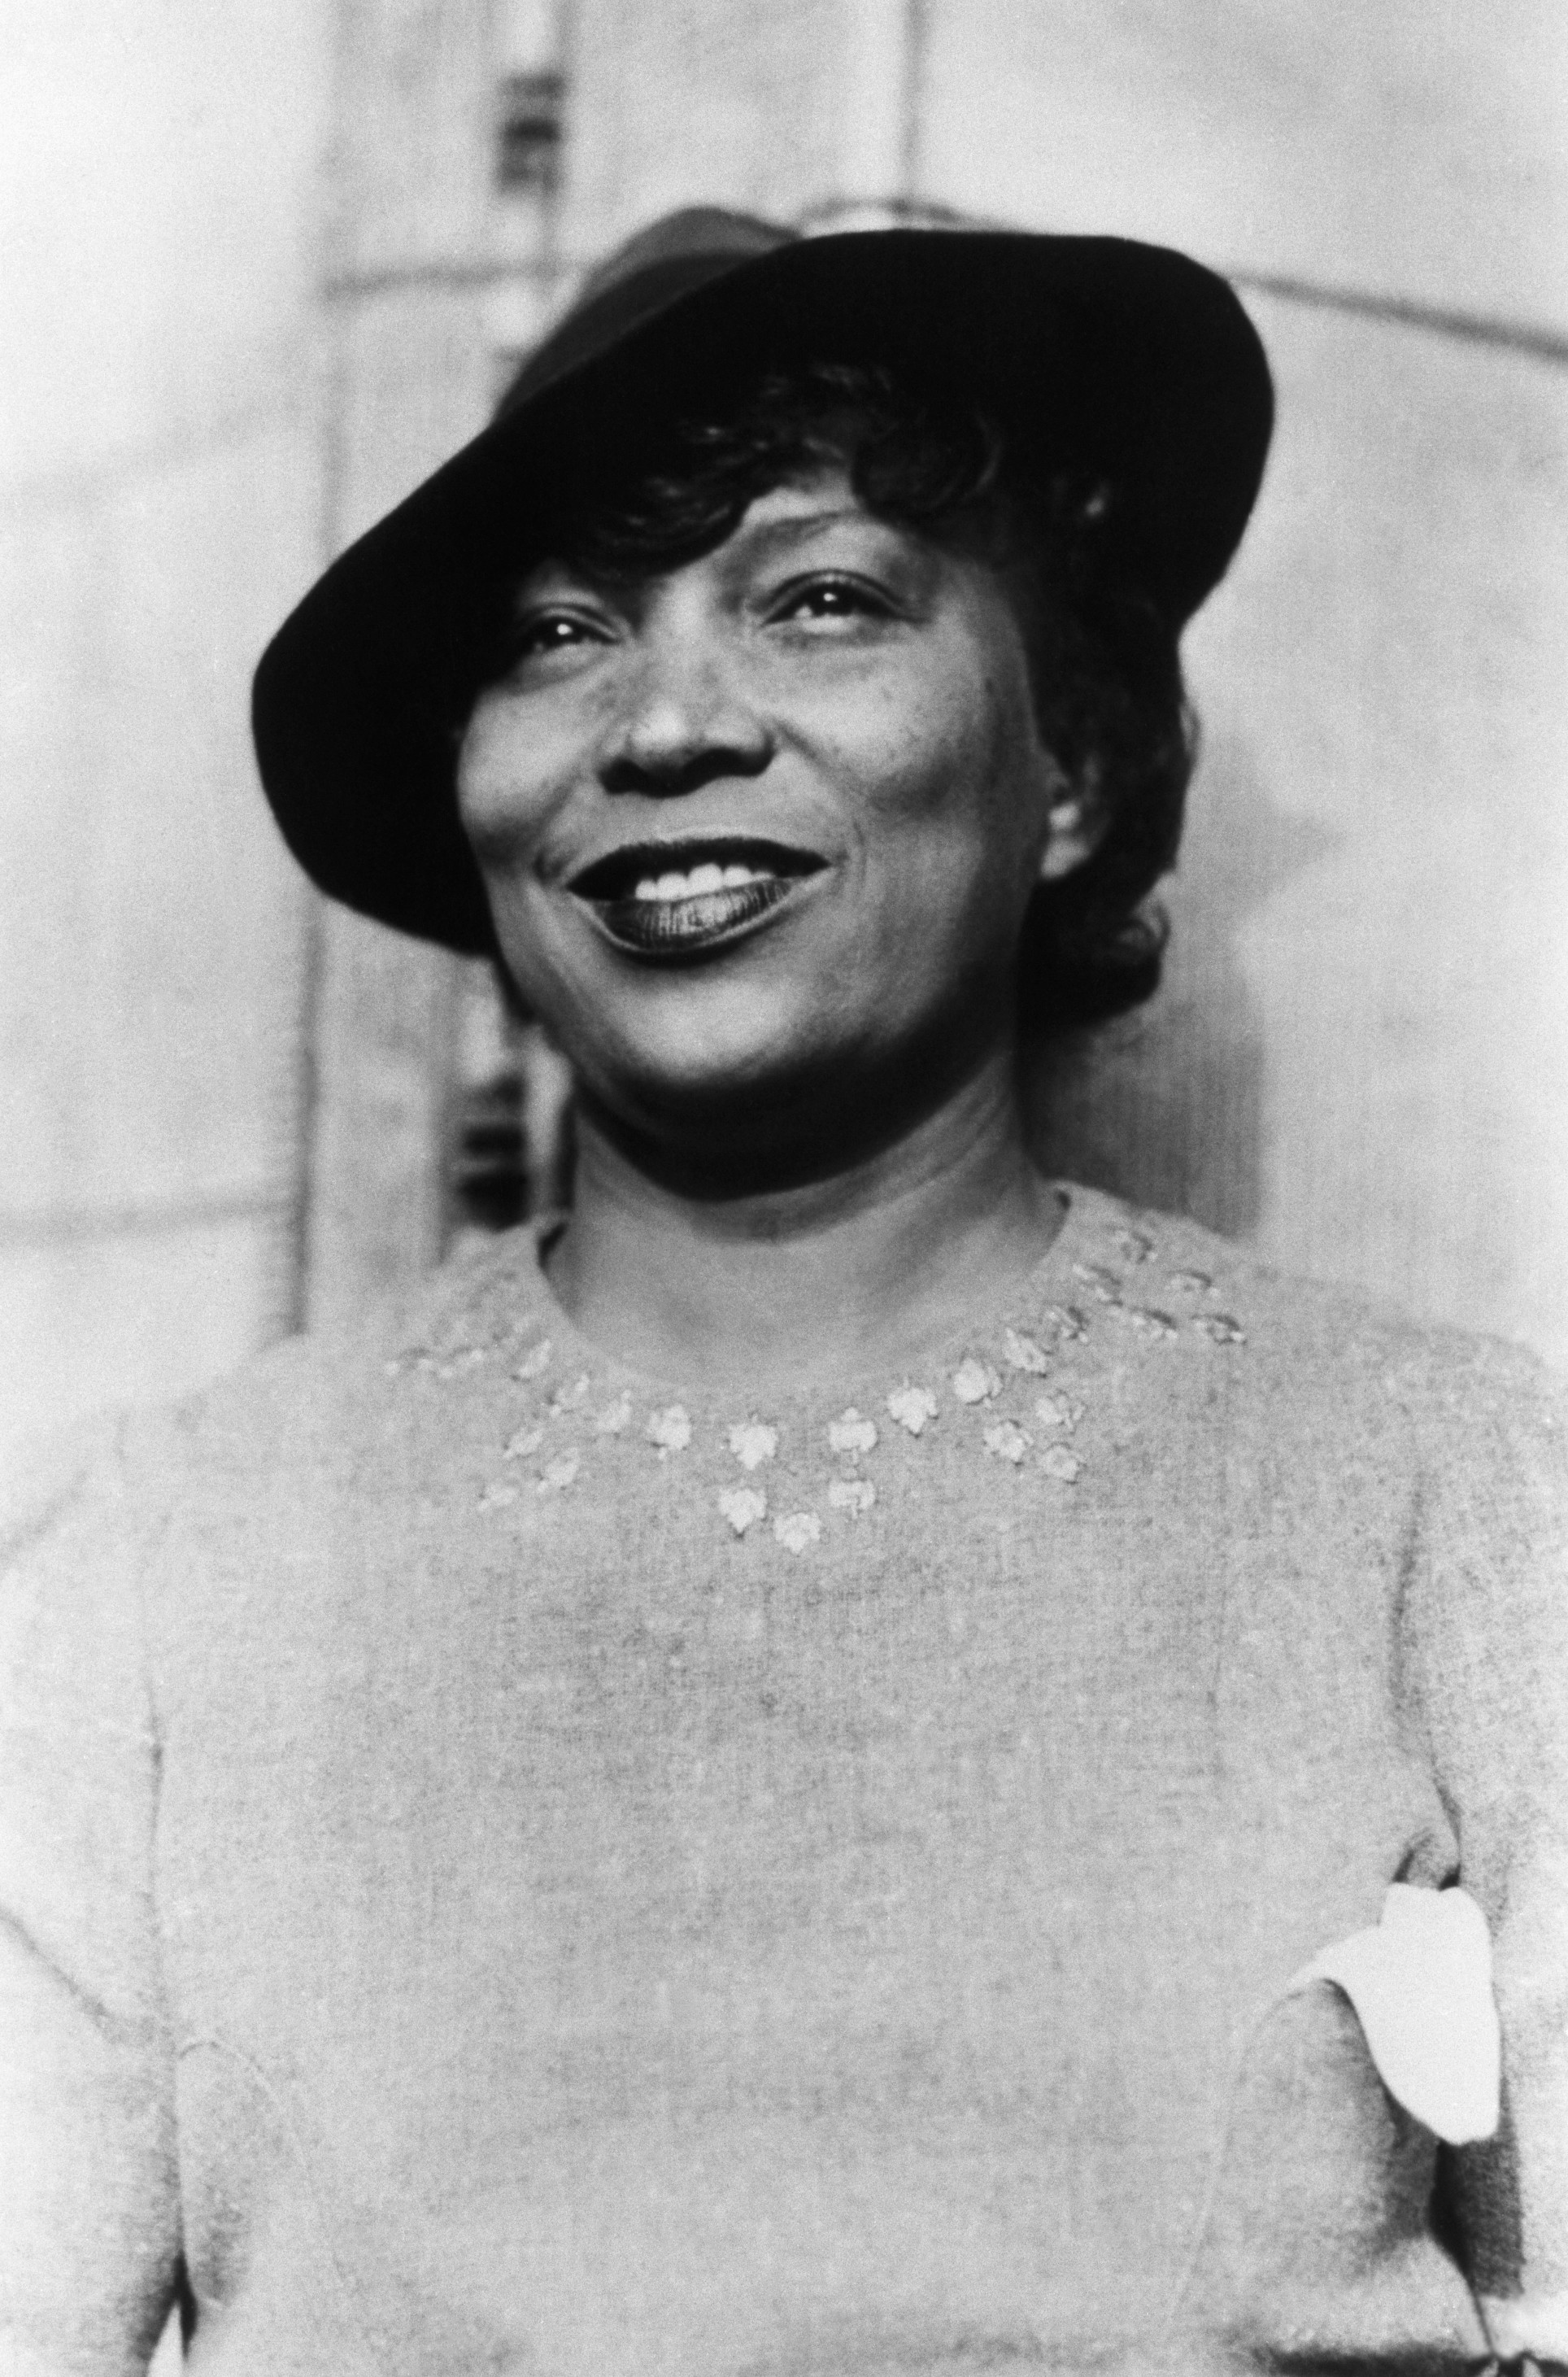 zora neale hurston black women authors pictures black women in zora neale hurston the harlem renaissance anthropologist folklorist their eyes were watching